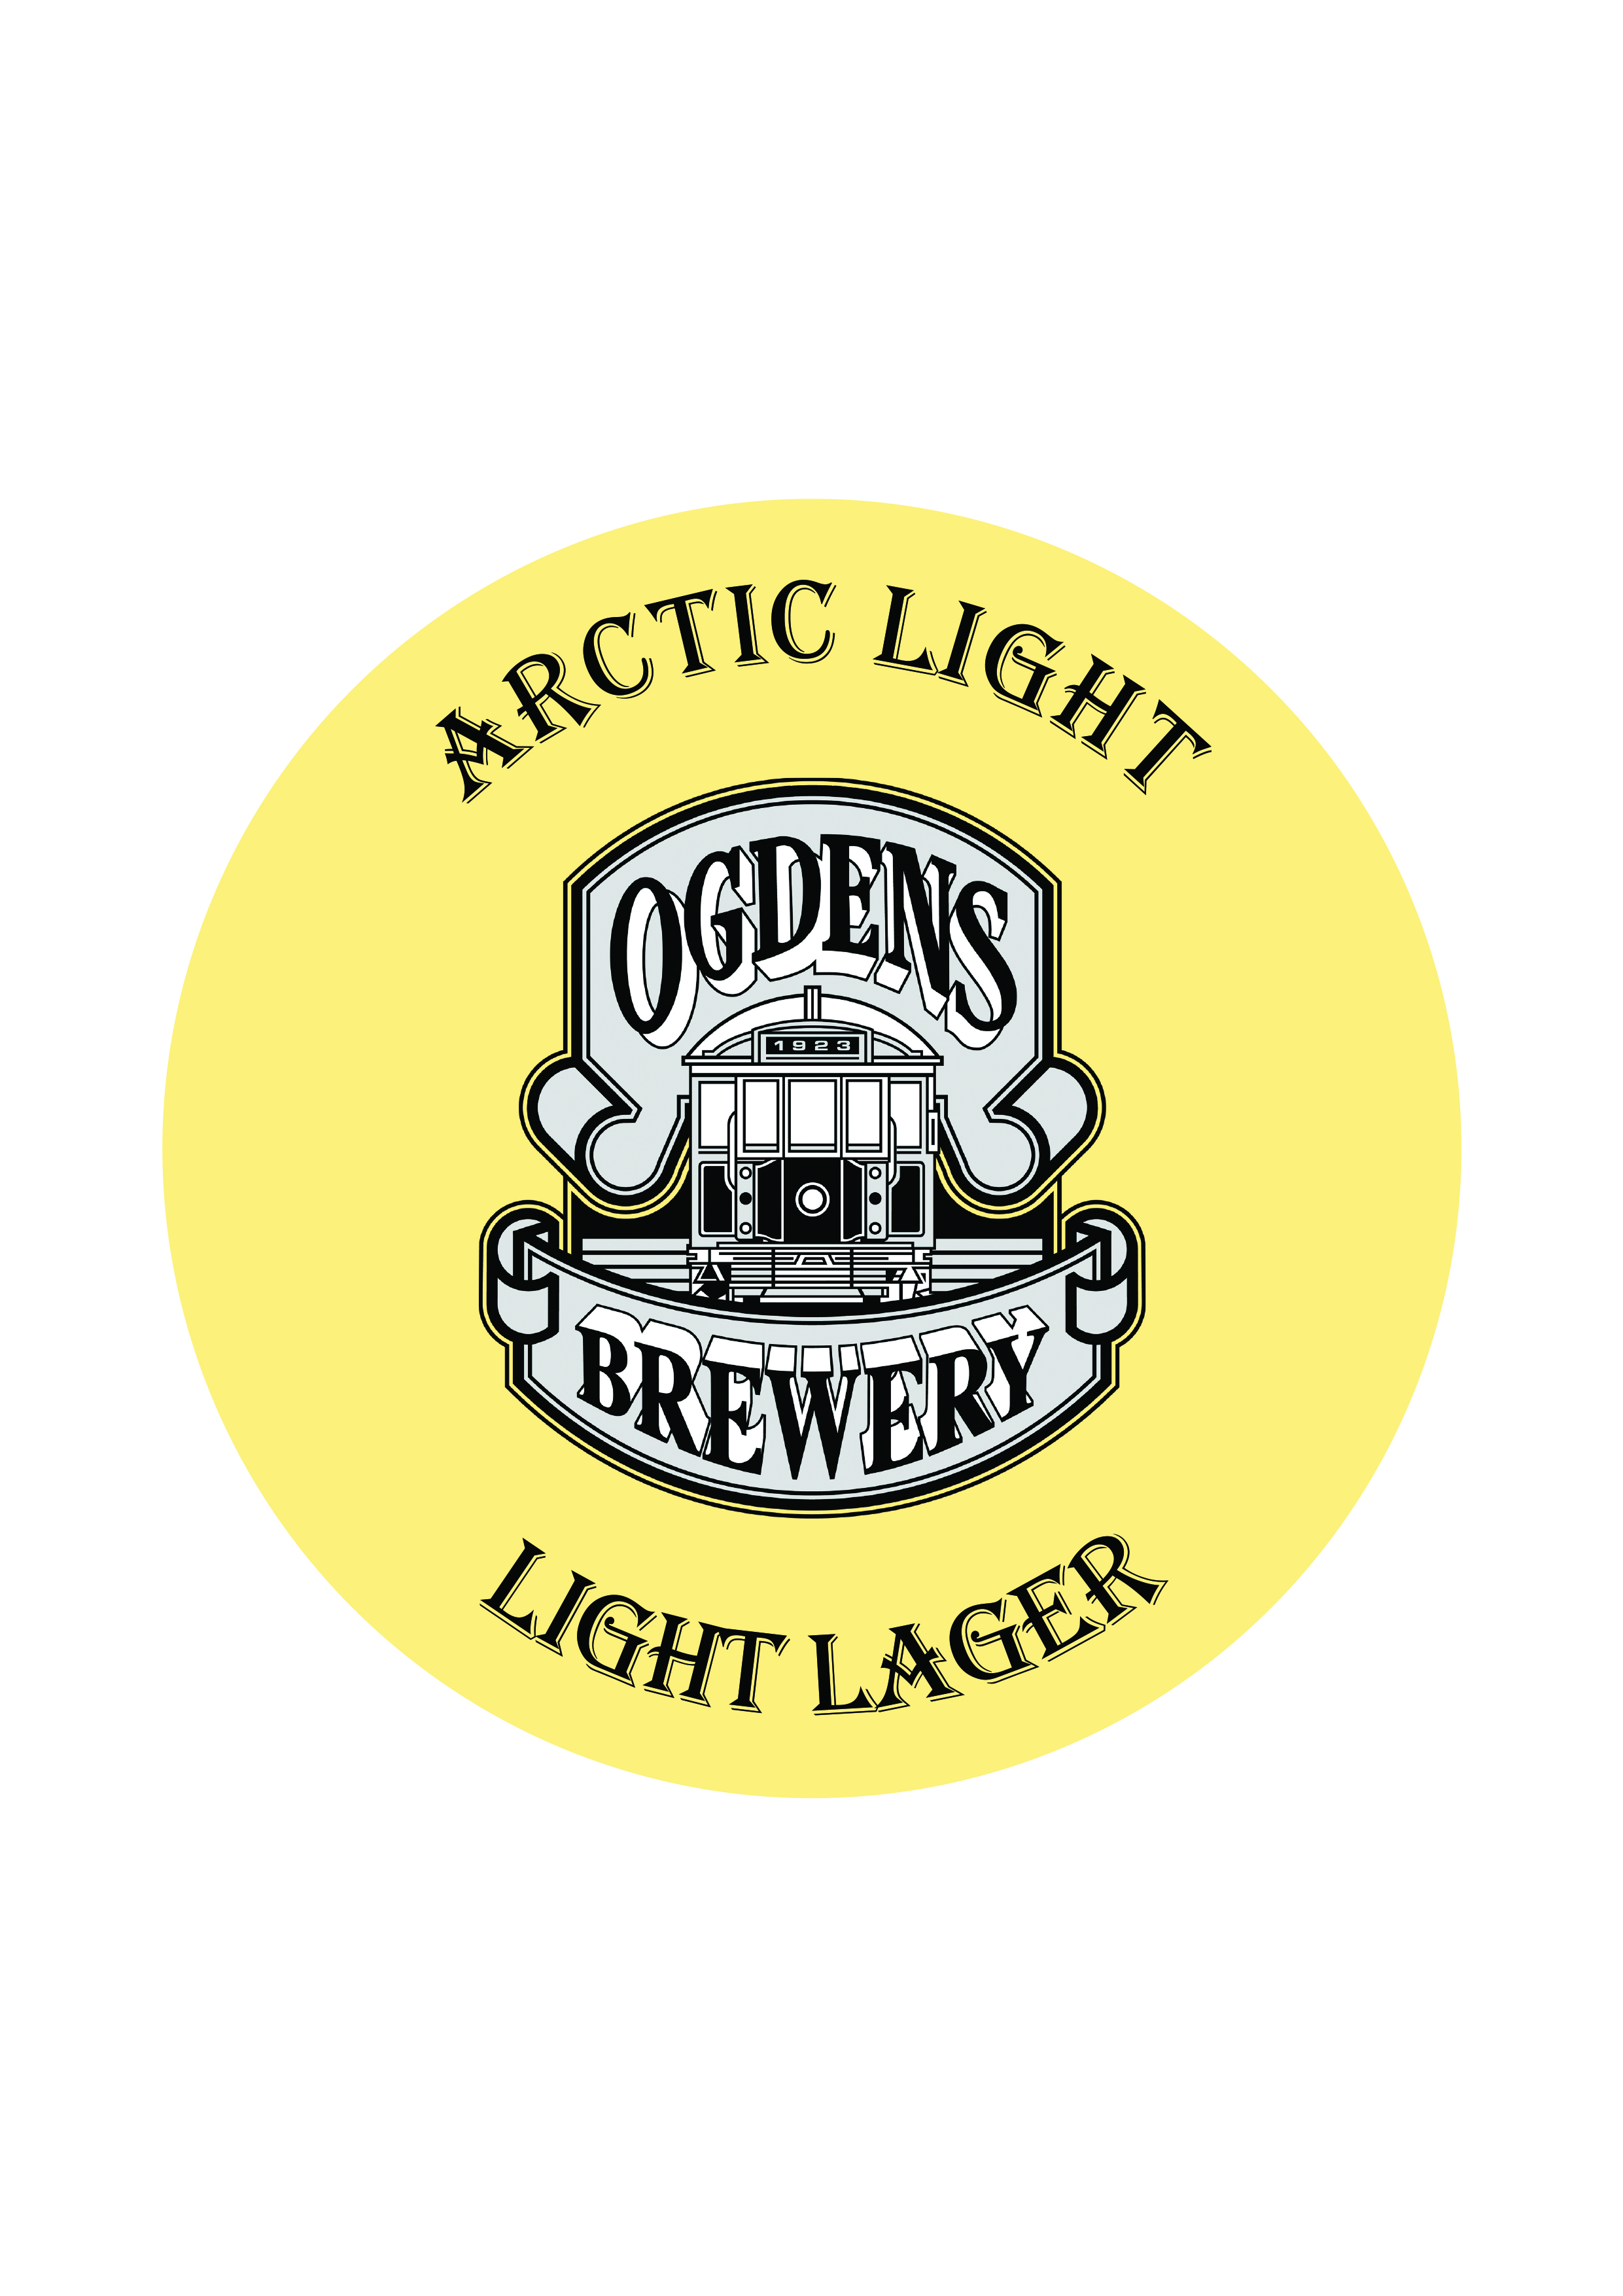 Light Lager   Light Lager   3.5% - Like the Arctic Lager but lighter in body and more restrained in flavour, it is also lower in bitterness. Australian malts and lower amounts of hops make this beer very enjoyable in the summer months. Low on bitterness and very thirst quenching.